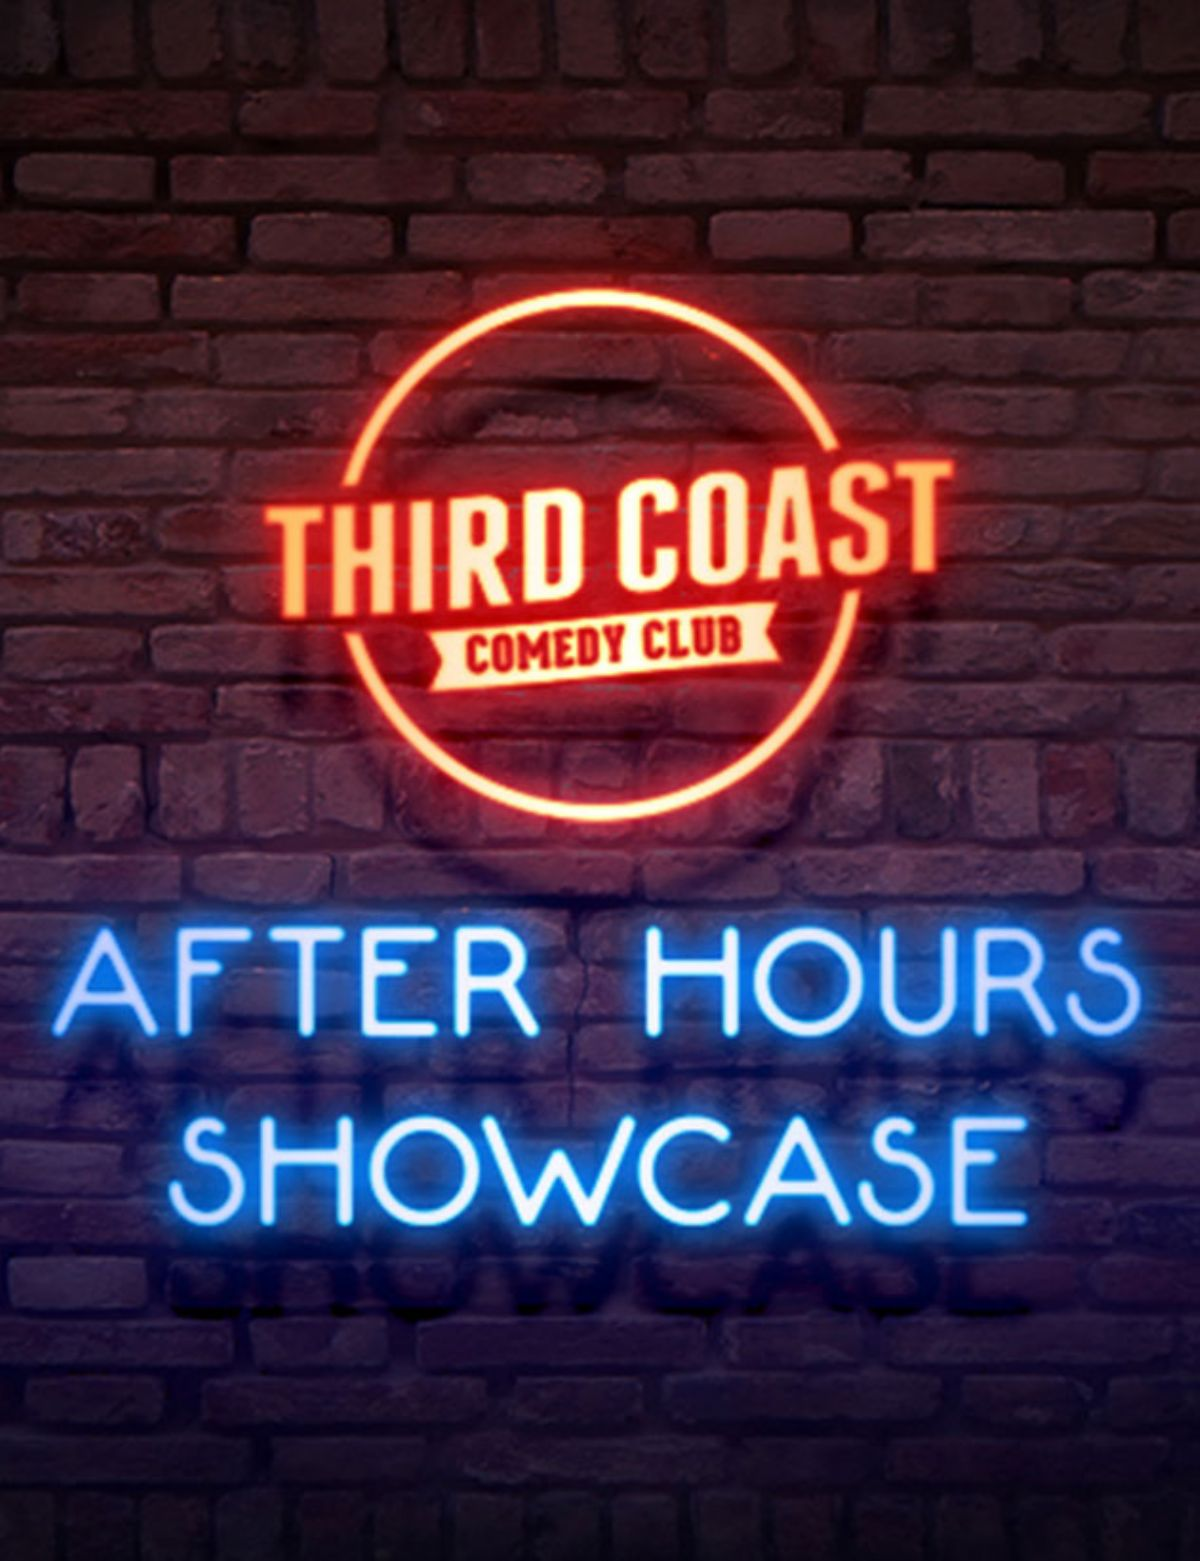 The After Hours Showcase